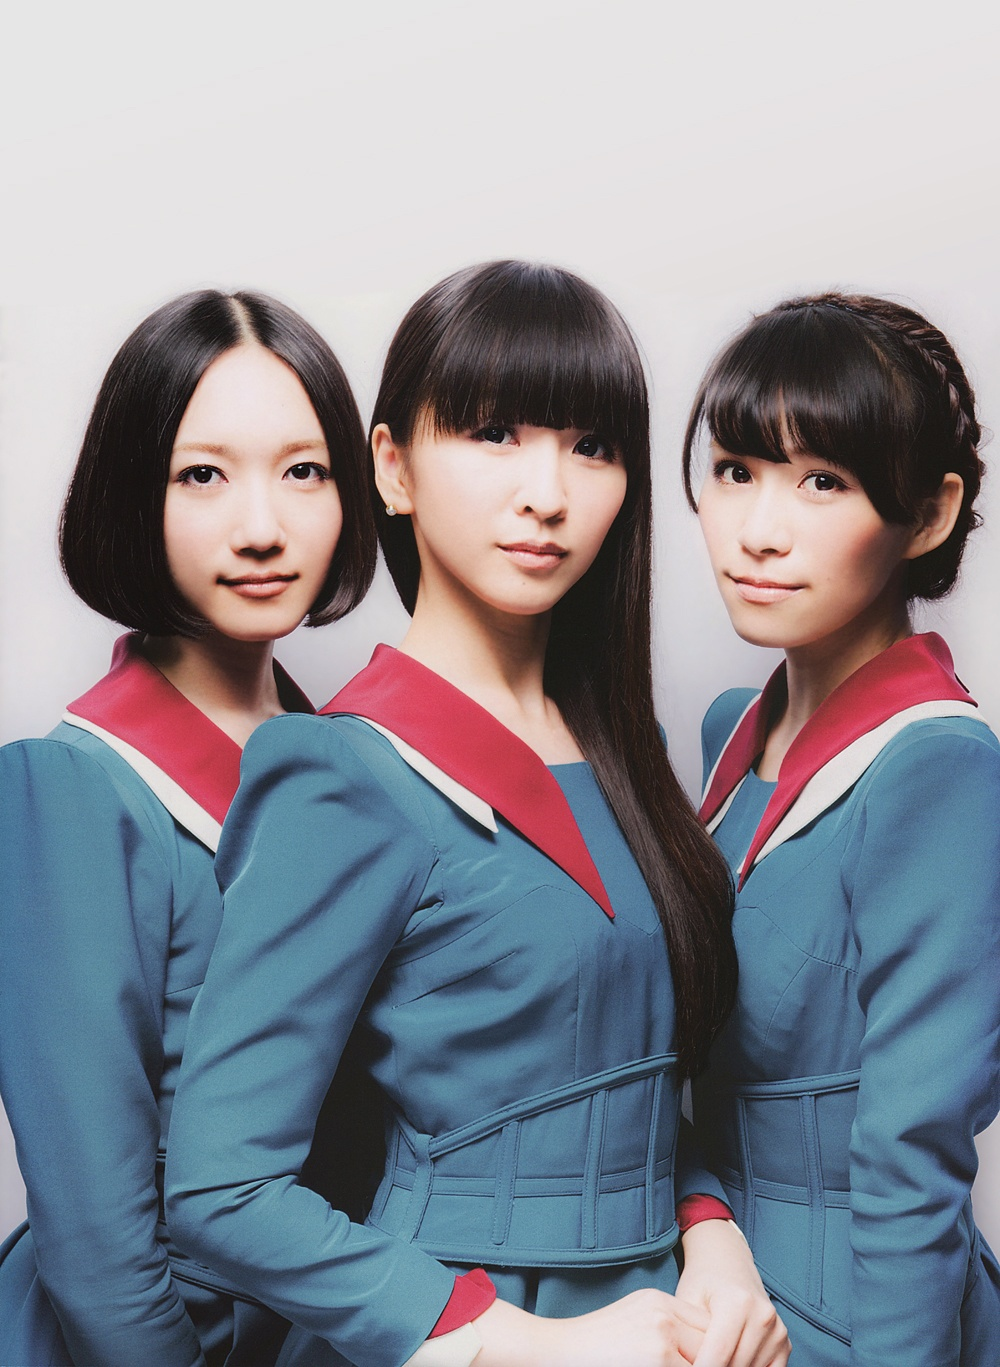 Perfume (Group) Android/iPhone Wallpaper #1687 - Asiachan ...